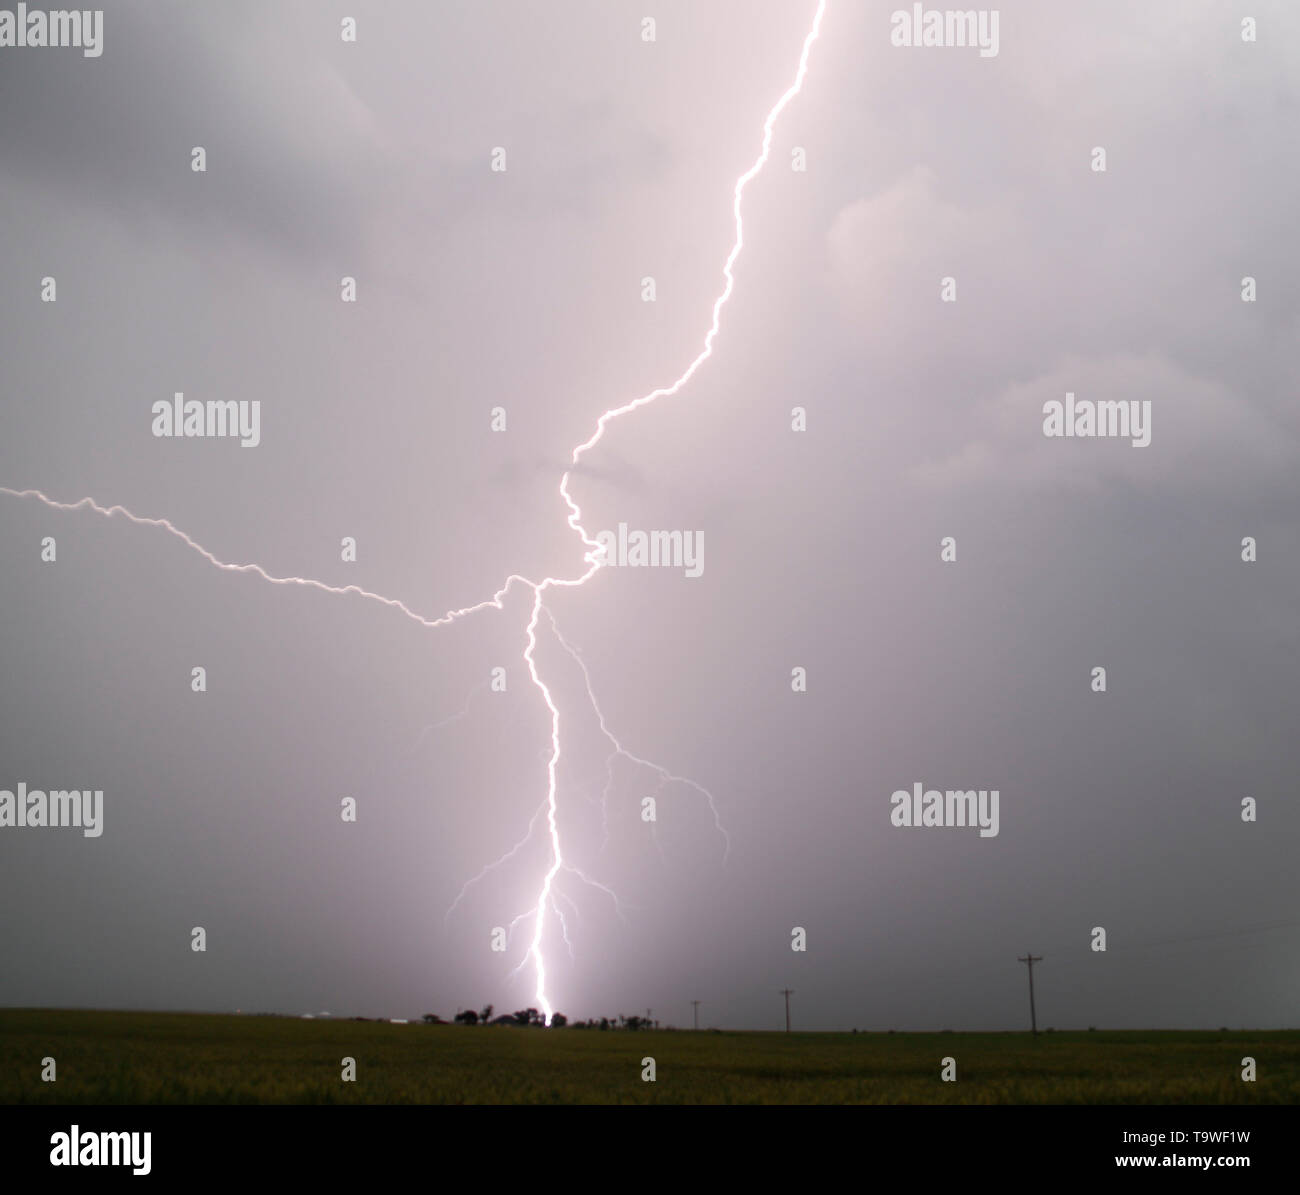 May 20, 2019: Mangum, Oklahoma, U.S.: Lightning bolts hit the ground from tornado warn strong cell over the Magna OK as flooding rain and severe storms, including tornadoes, are predicted in the Southern Plains through late Monday. Tornado watches in effect in the Texas Panhandle and Oklahoma expire before midnight. Then, flooding is expected to become the major concern overnight from Oklahoma City to Tulsa and to the northeast. The tornado outbreak has not been as severe as feared as twisters have mostly avoided population centers. Credit: Gene Blevins/ZUMA Wire/Alamy Live News - Stock Image